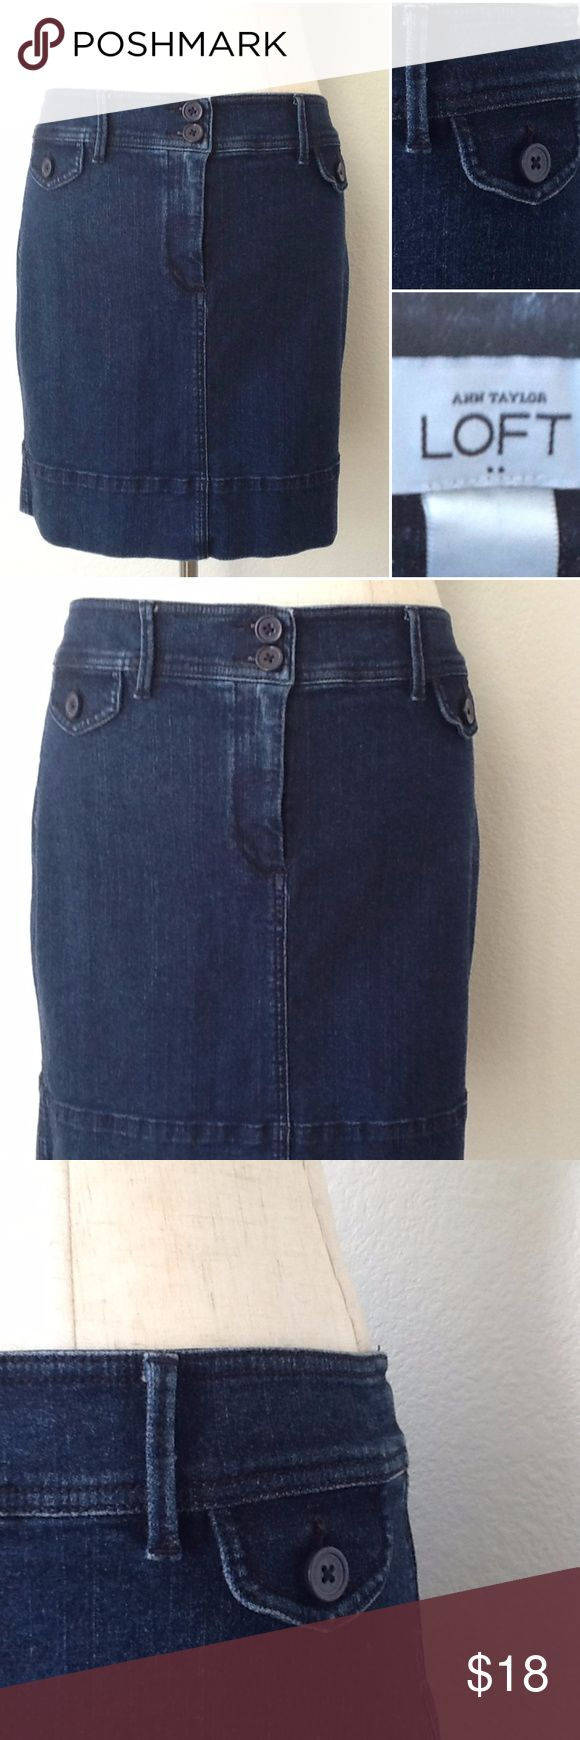 LOFT Stretch Denim Skirt 12 EUC- No rips, holes, tears, or stains.   Ann Taylor LOFT dark blue denim stretch mini skirt. Size 12. 99% cotton 1% spandex. Faux button flaps in front and in the back.   Waist- 17.5 Length- 17  Smoke free/ pet free home.  All photos taken in natural light. LOFT Skirts